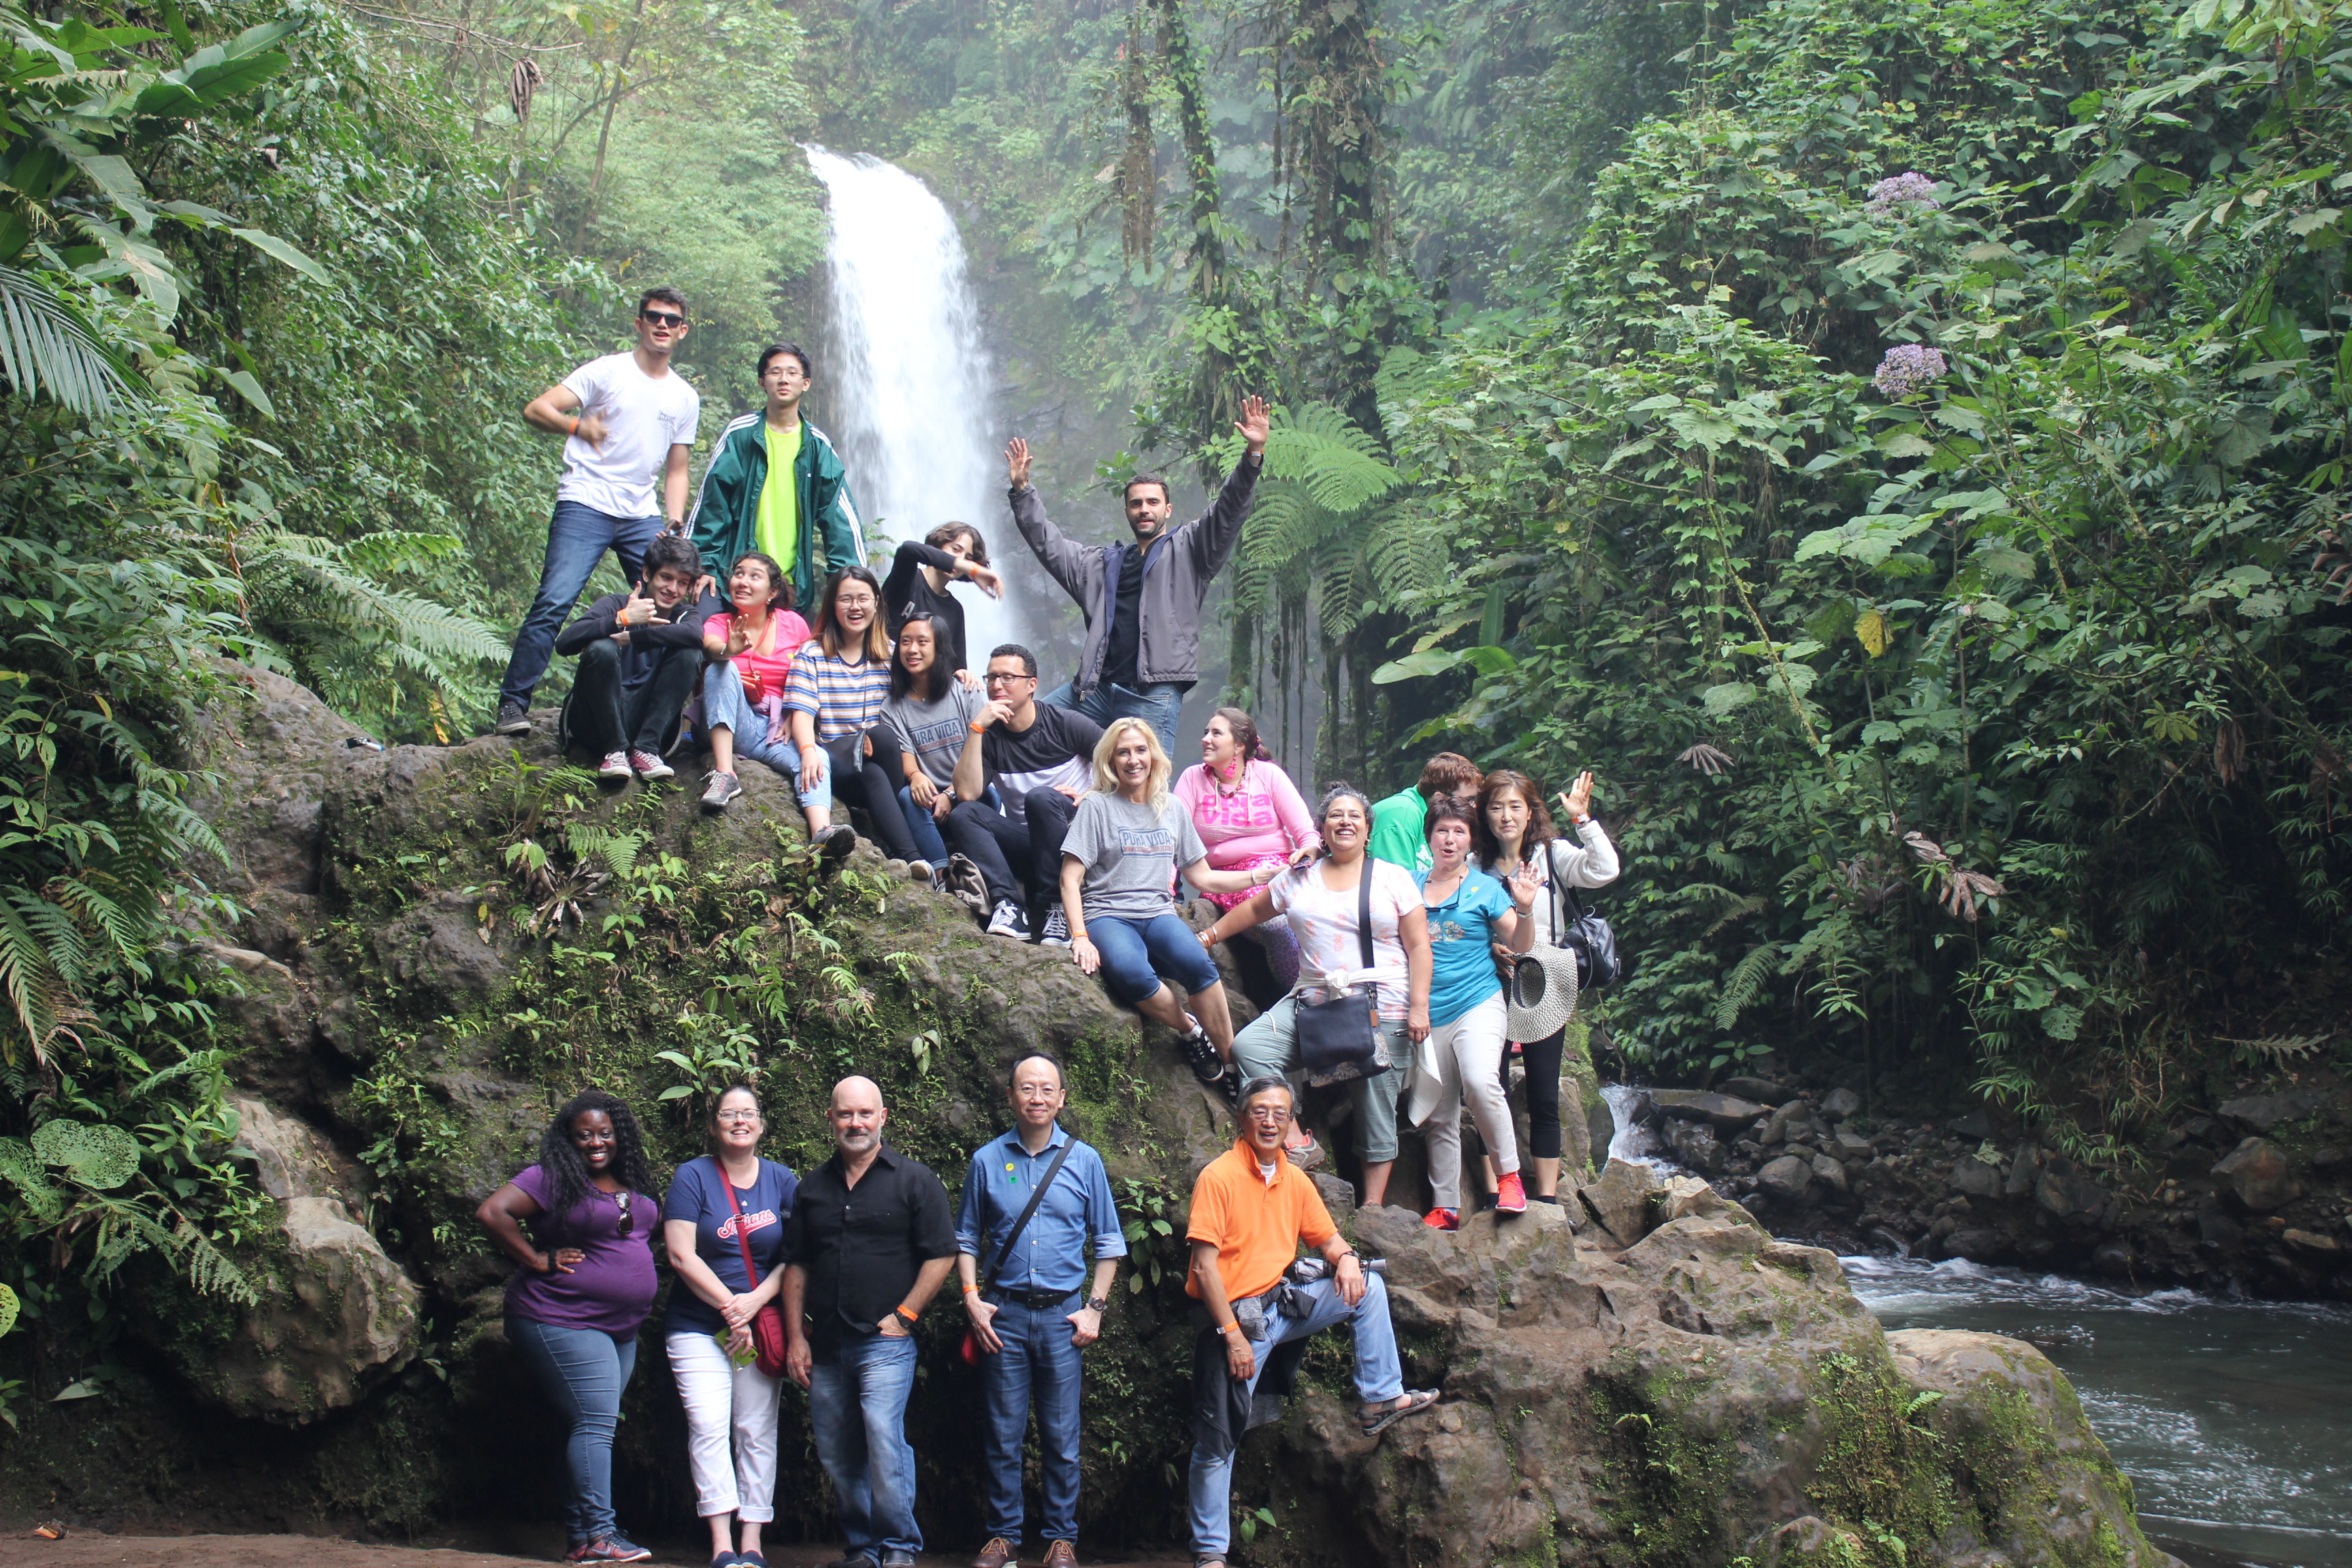 La Paz Waterfalls group photo